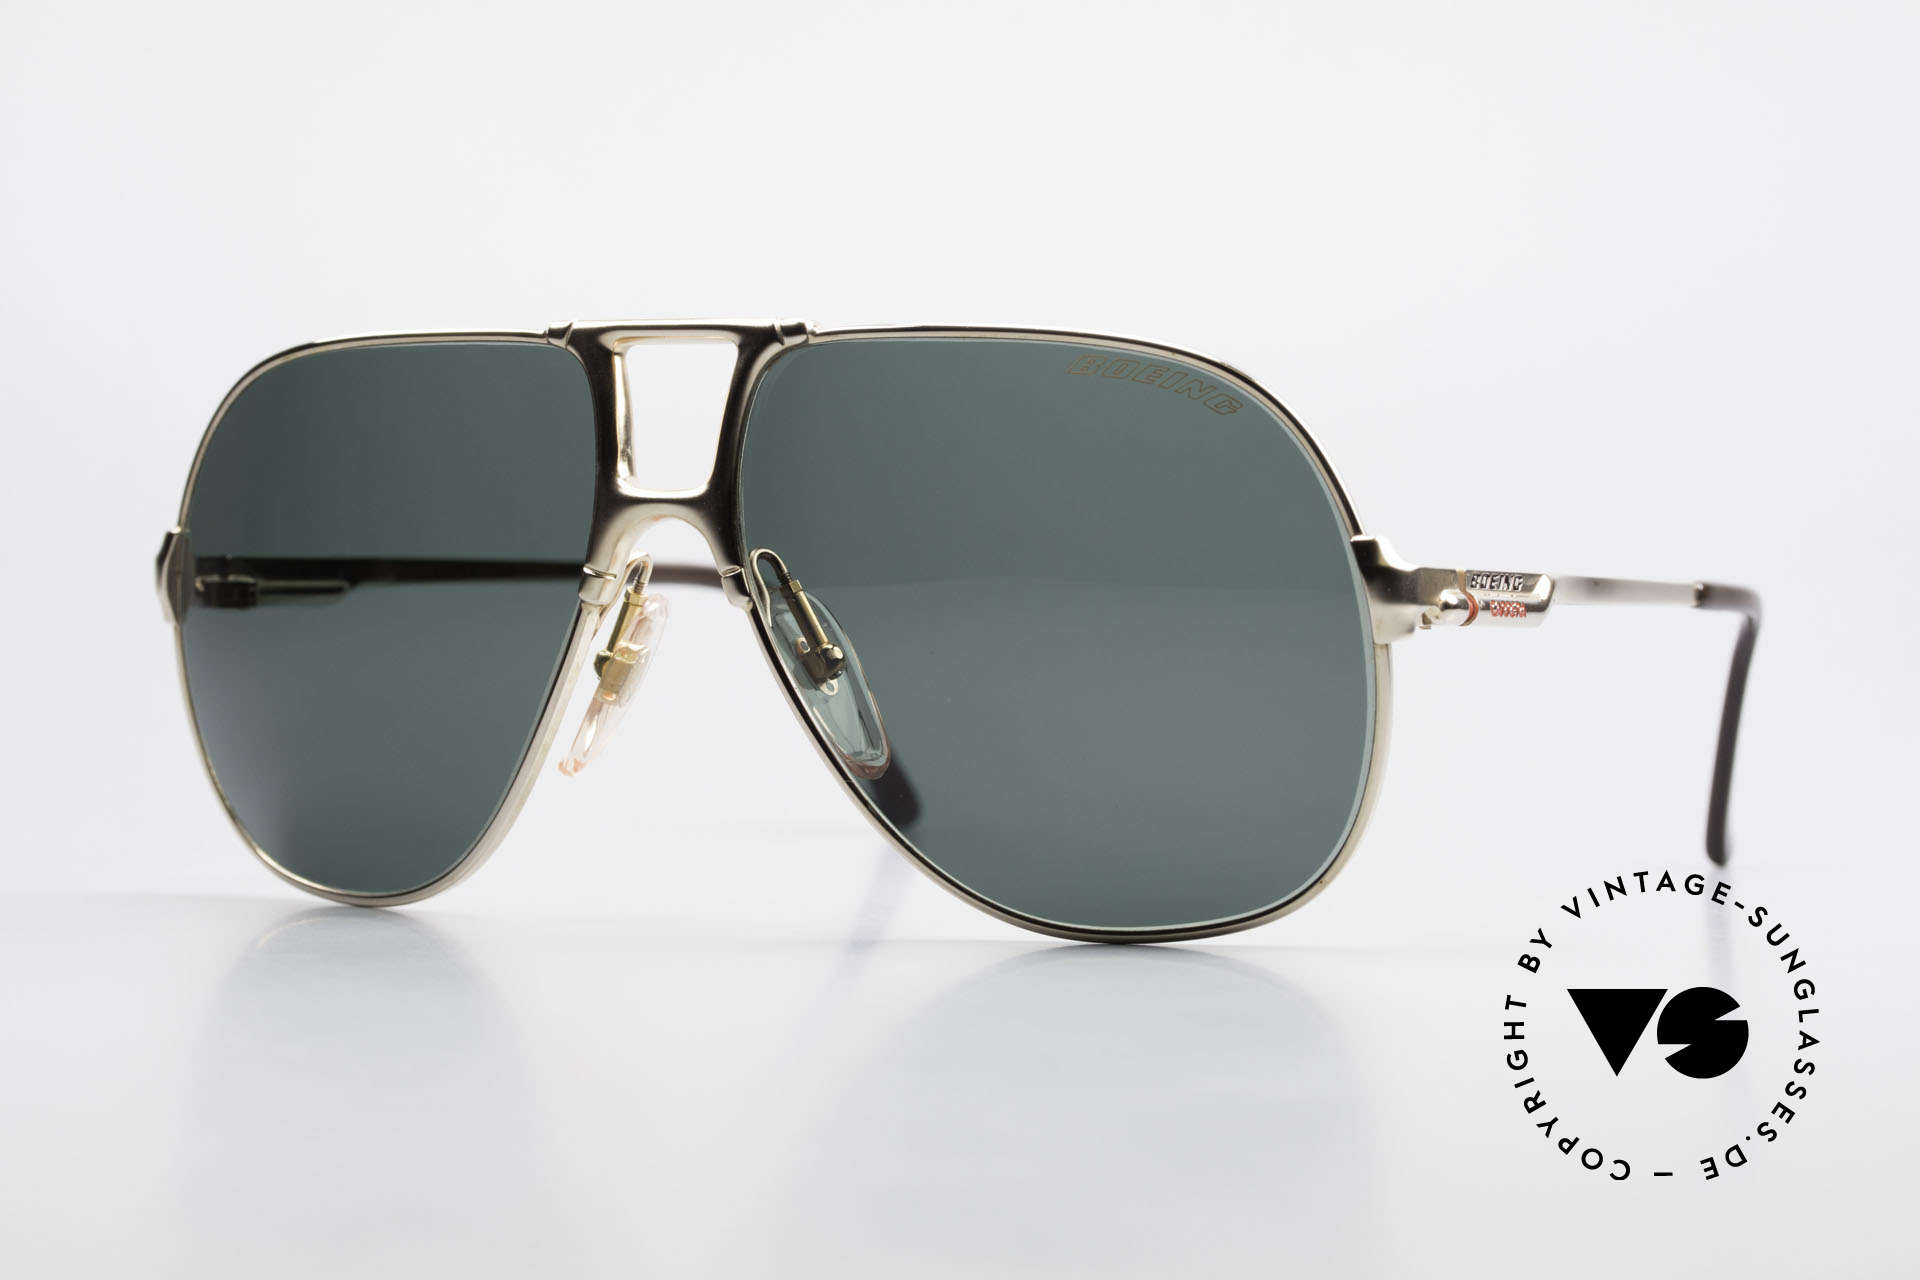 Boeing 5700 Large Old 80's Pilots Shades, The BOEING Collection by Carrera from 1988/1989, Made for Men